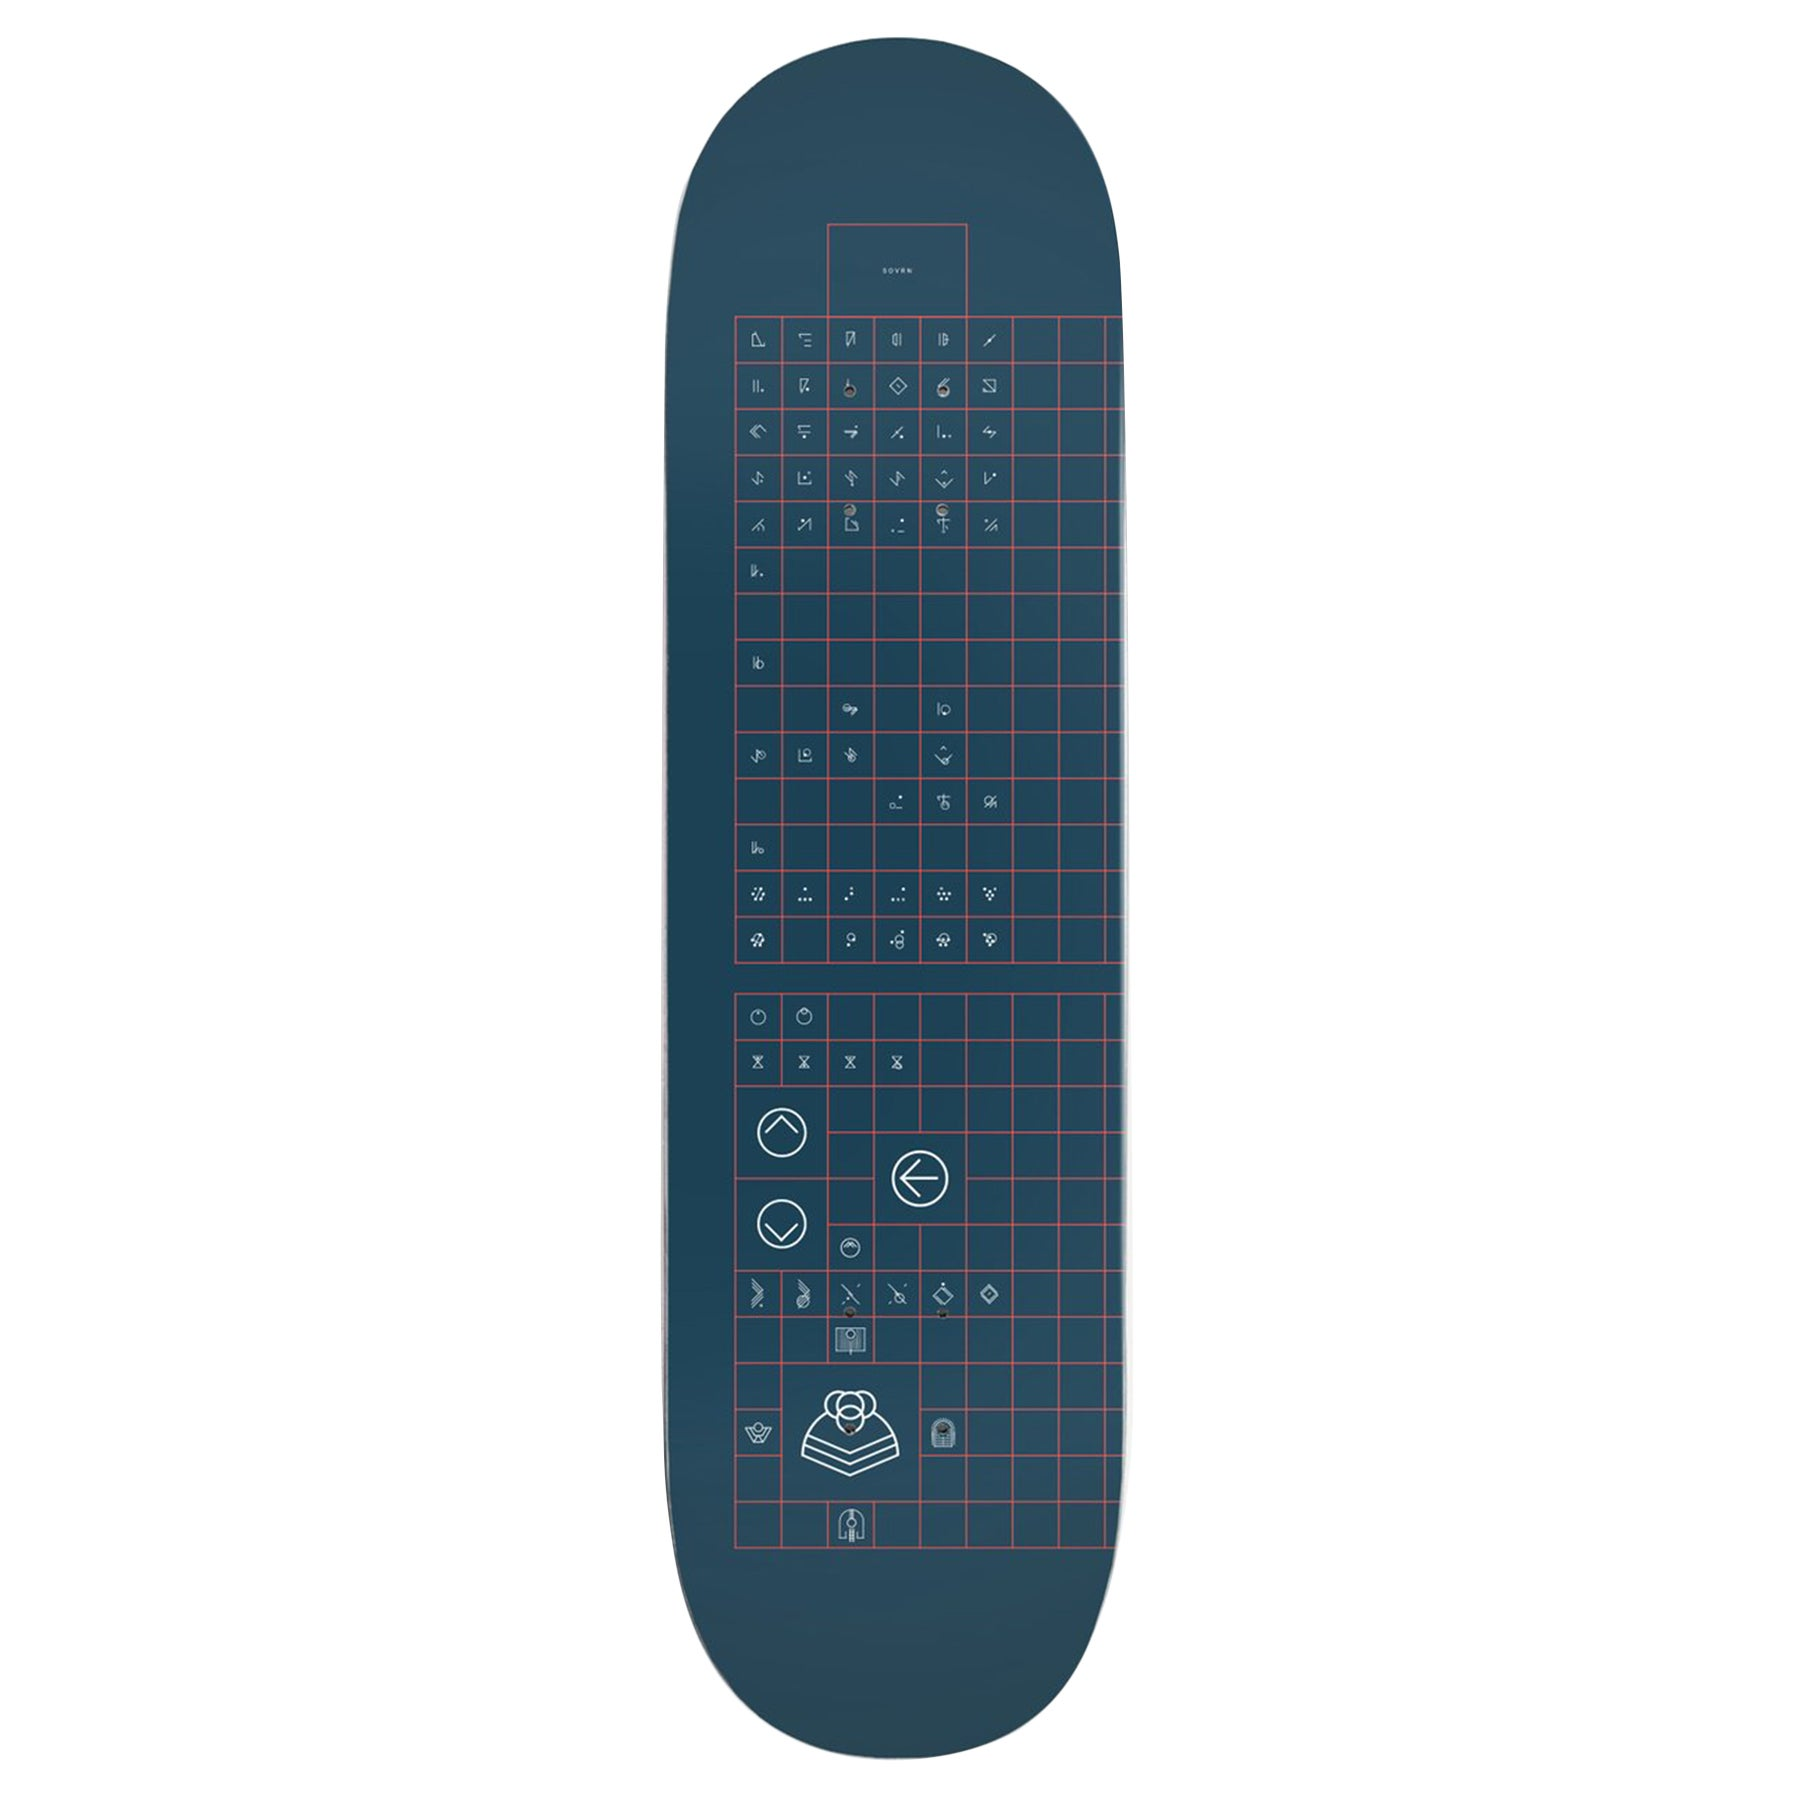 SOVRN Filtrate 8.25 Inch Skateboard Deck - Multicolour